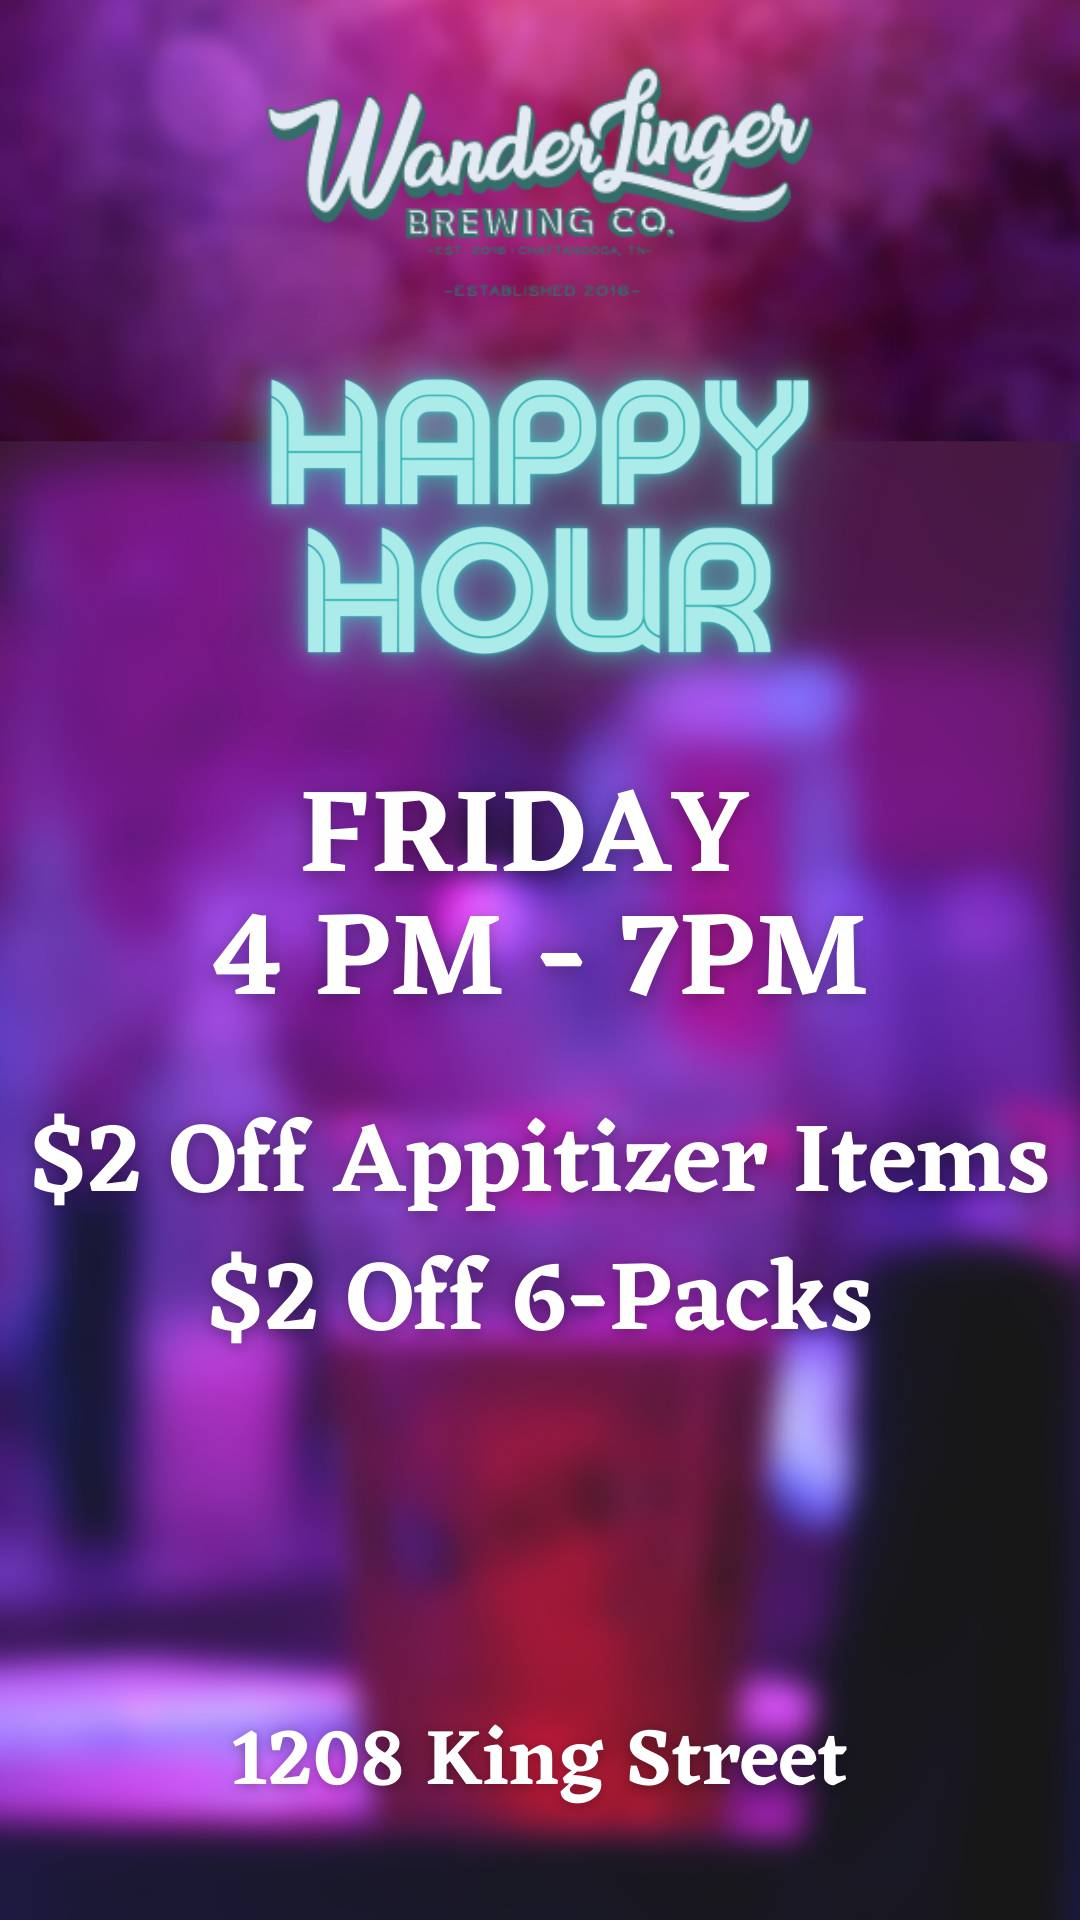 Friday Happy Hour! $2 Off Appitizers/$2 Off 6-Packs